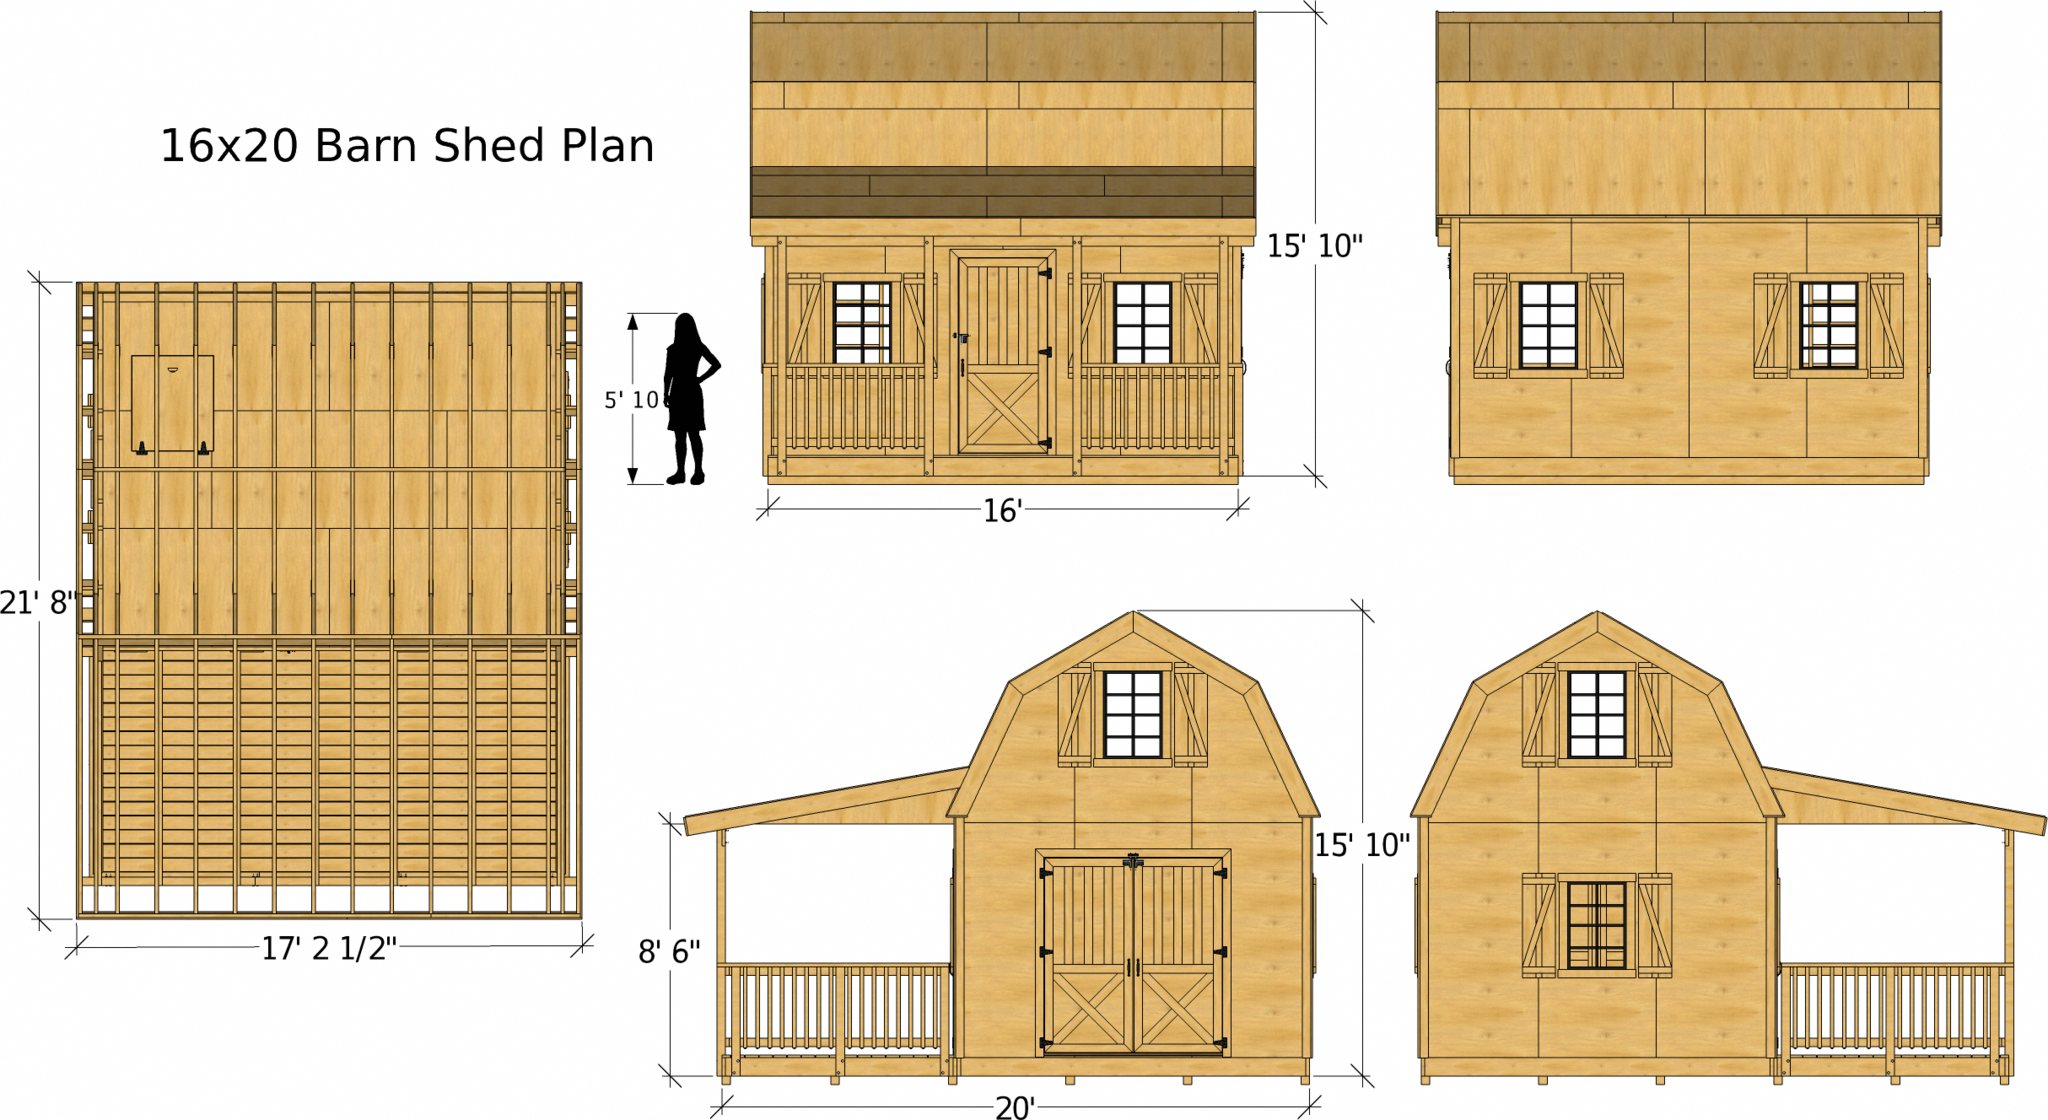 Diy Barn Shed Plans 12x14 16x20 20x24 Two Story Front Porch Paul S Sheds Barns Sheds Small Shed Plans Shed Plan